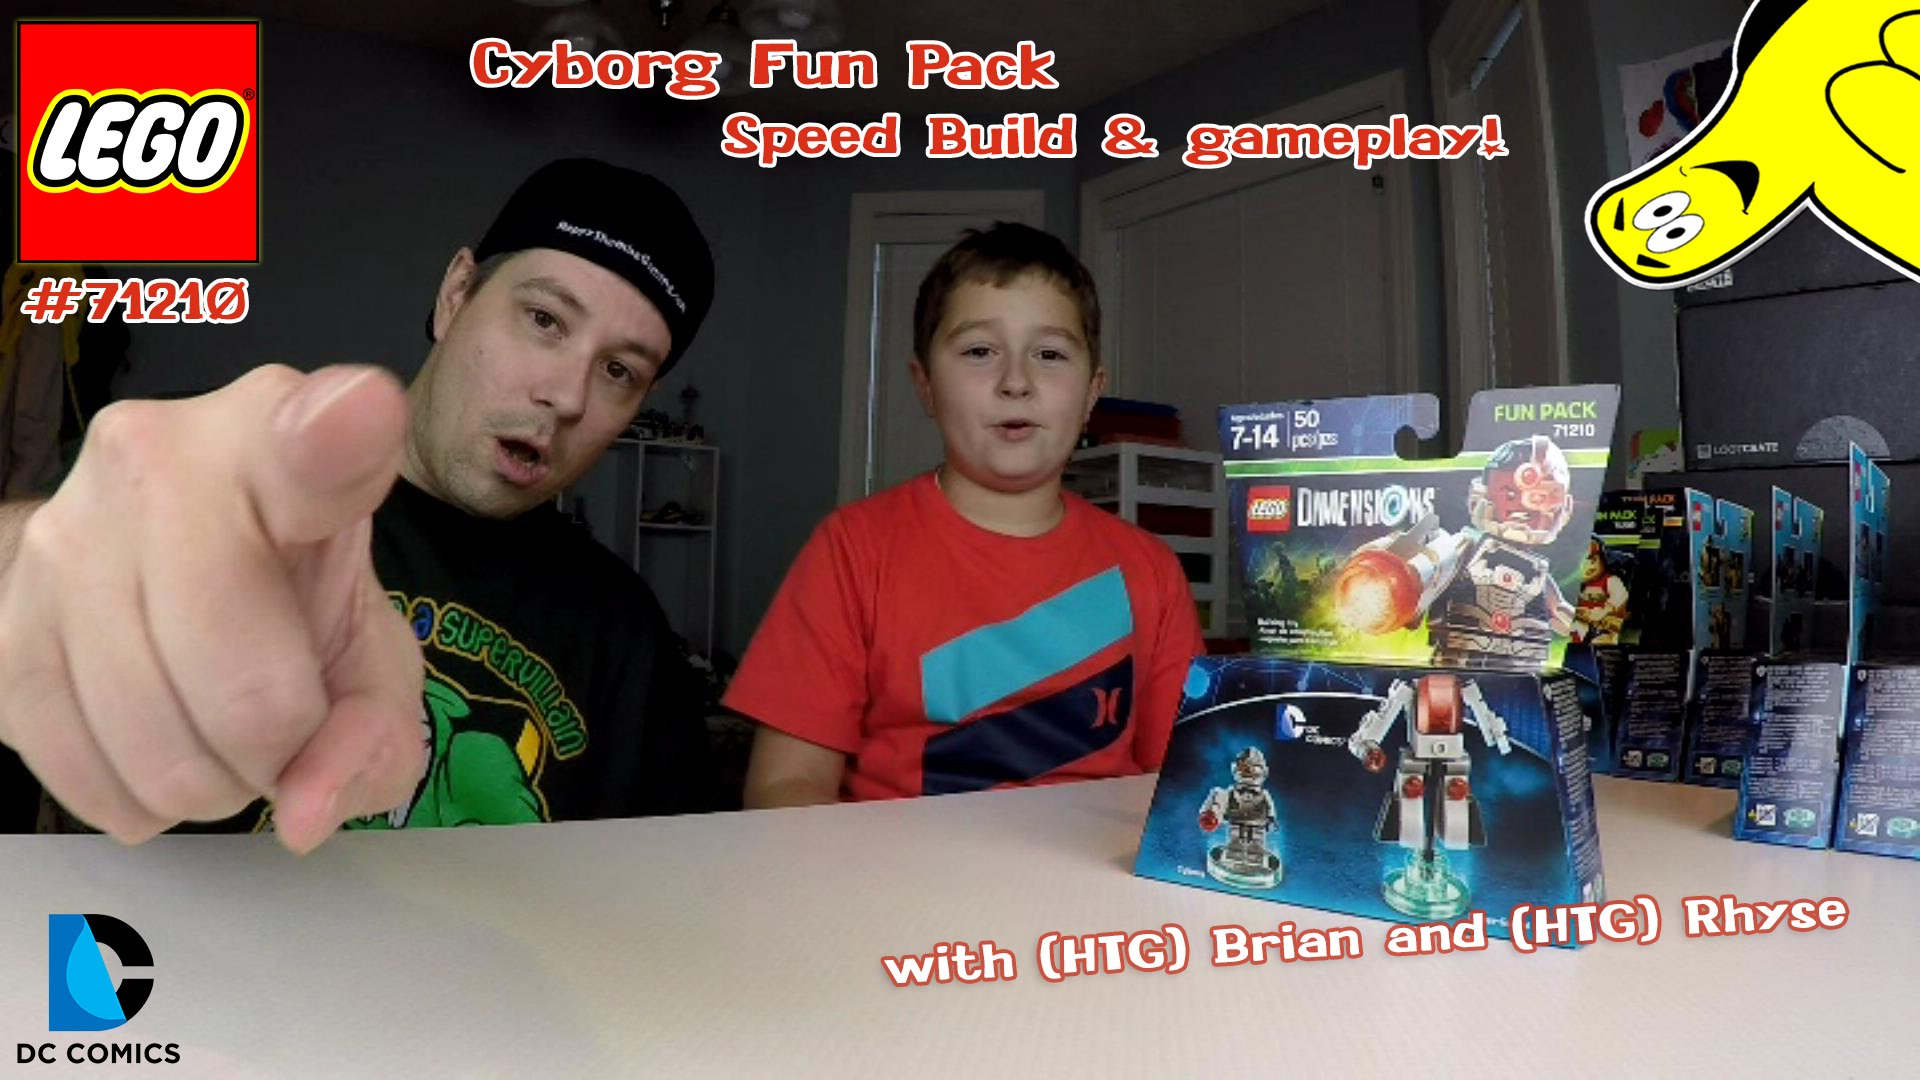 Lego Dimensions: Cyborg Fun Pack #71210 Speed Build & Gameplay – HTG